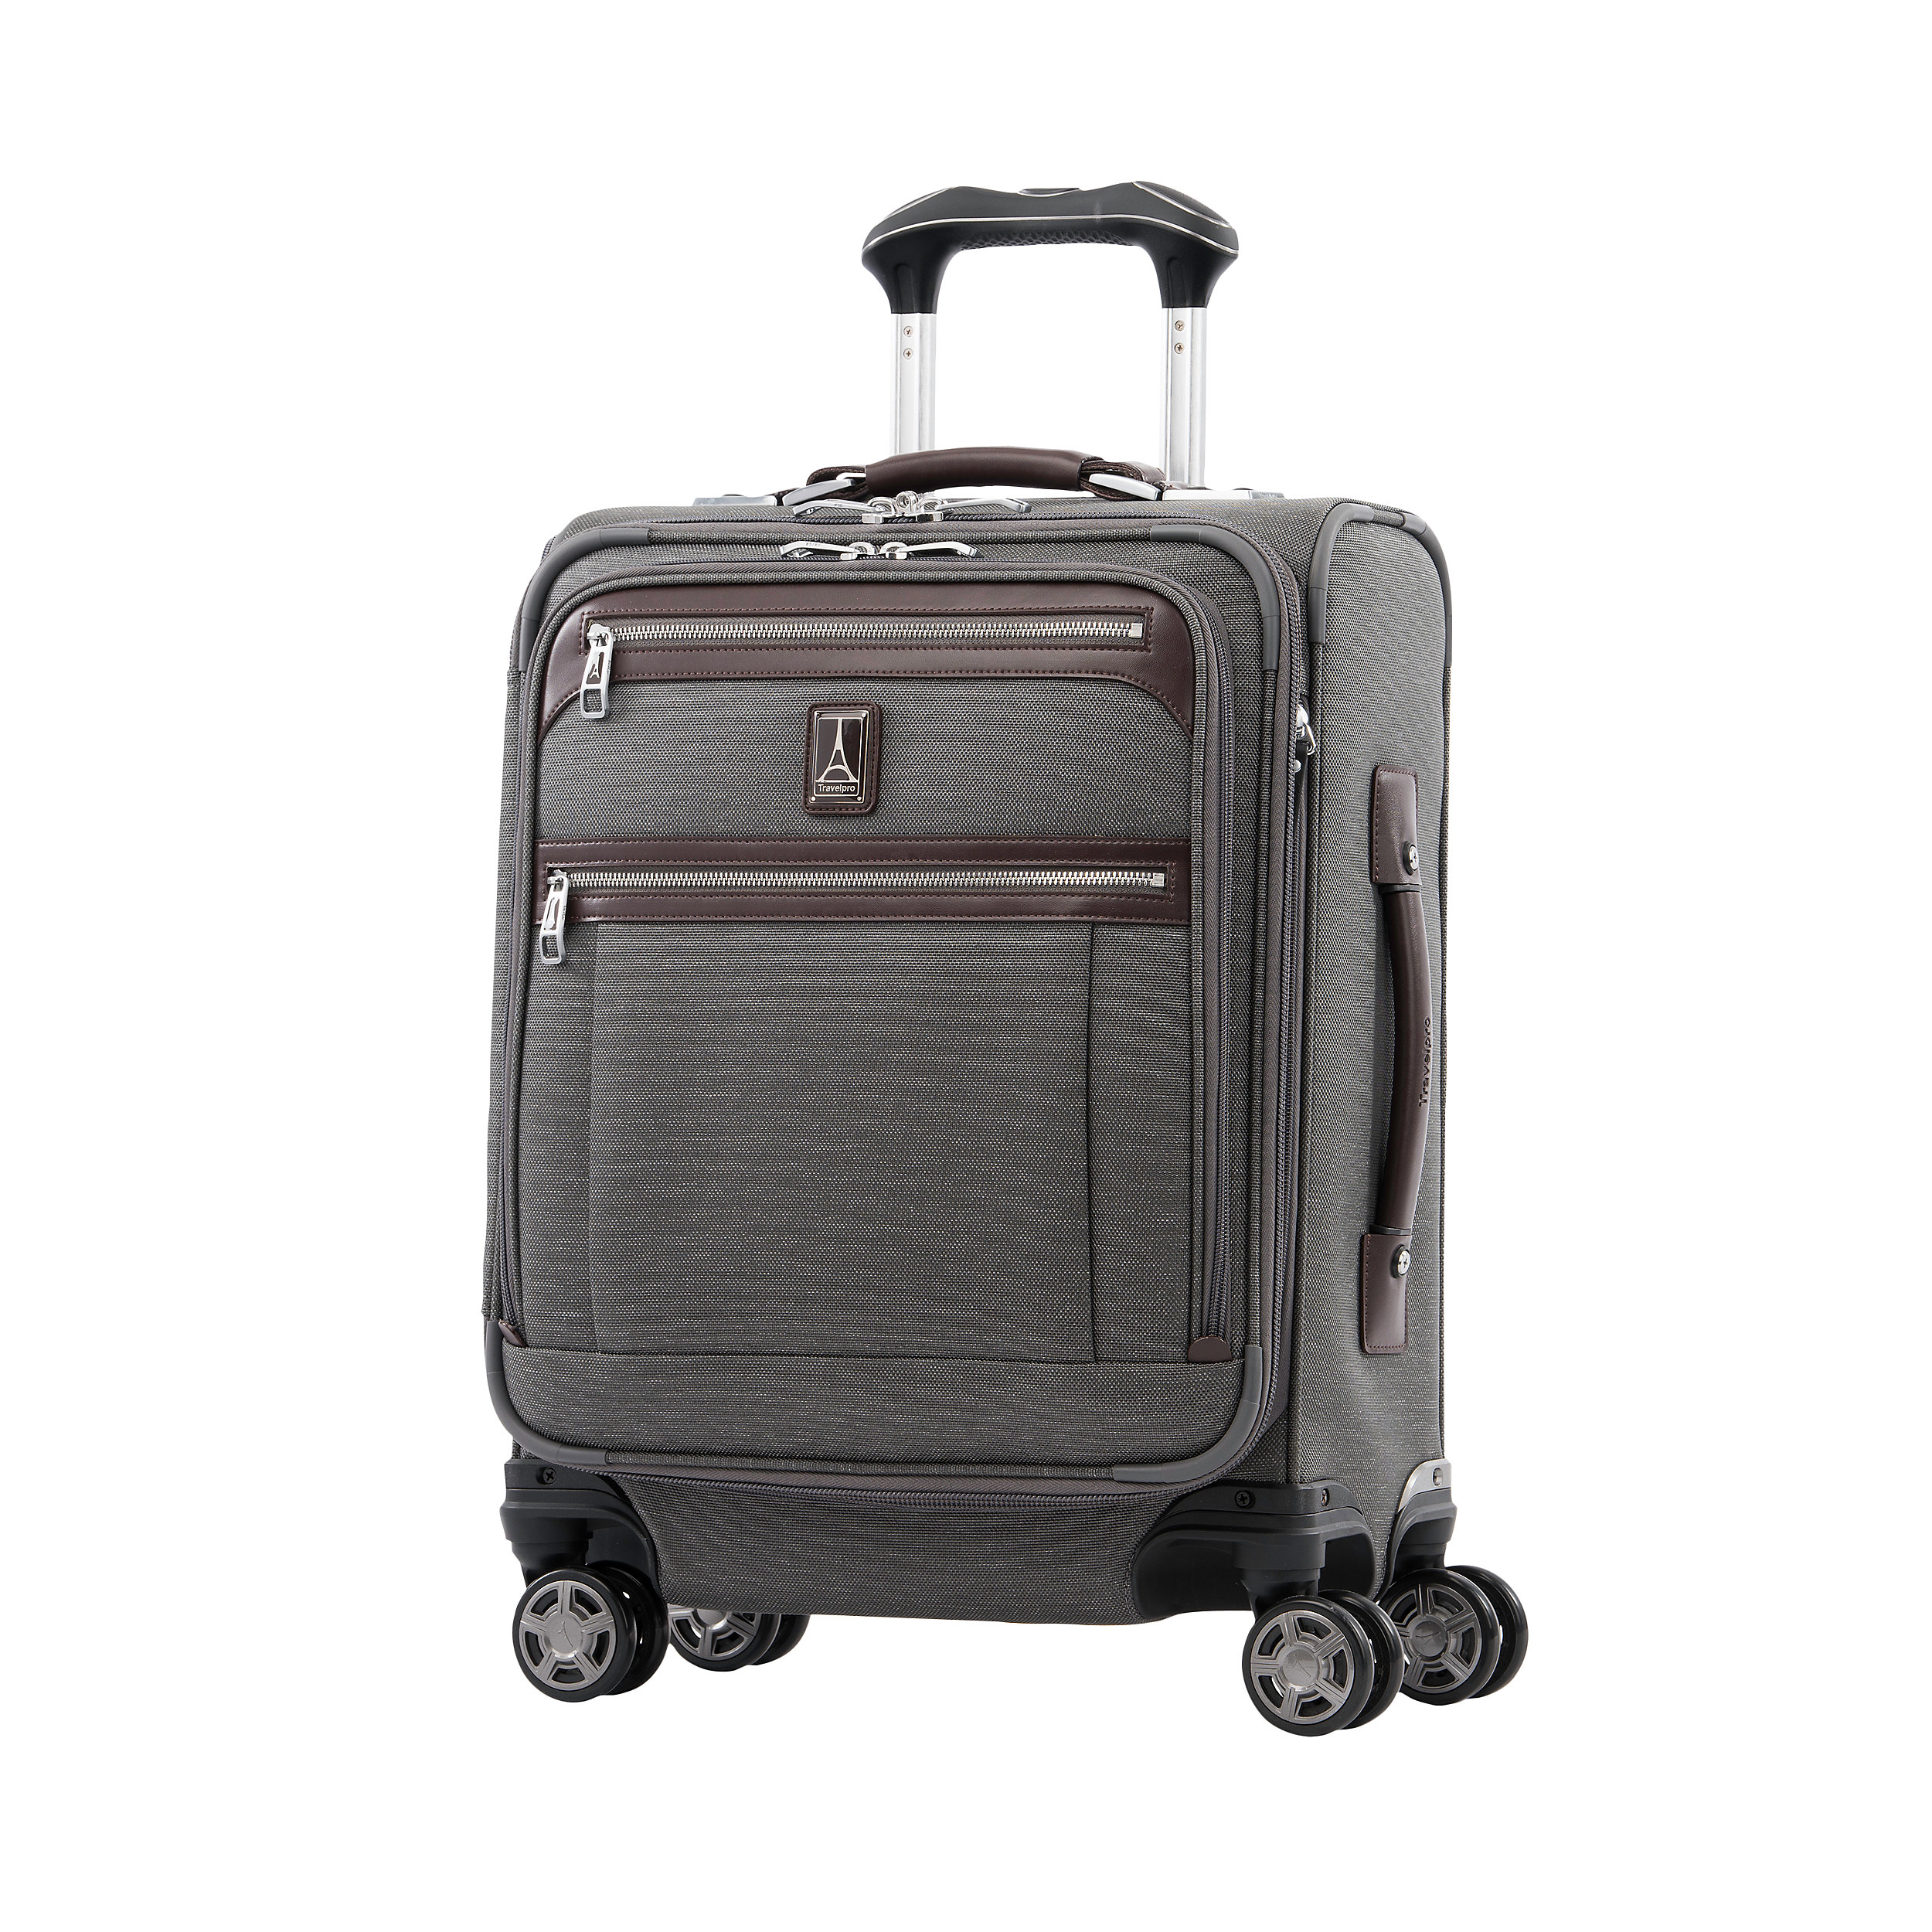 Carry-on with 4 wheels 55 cm with USB port Expandable Platinum Elite Small 39 Liter